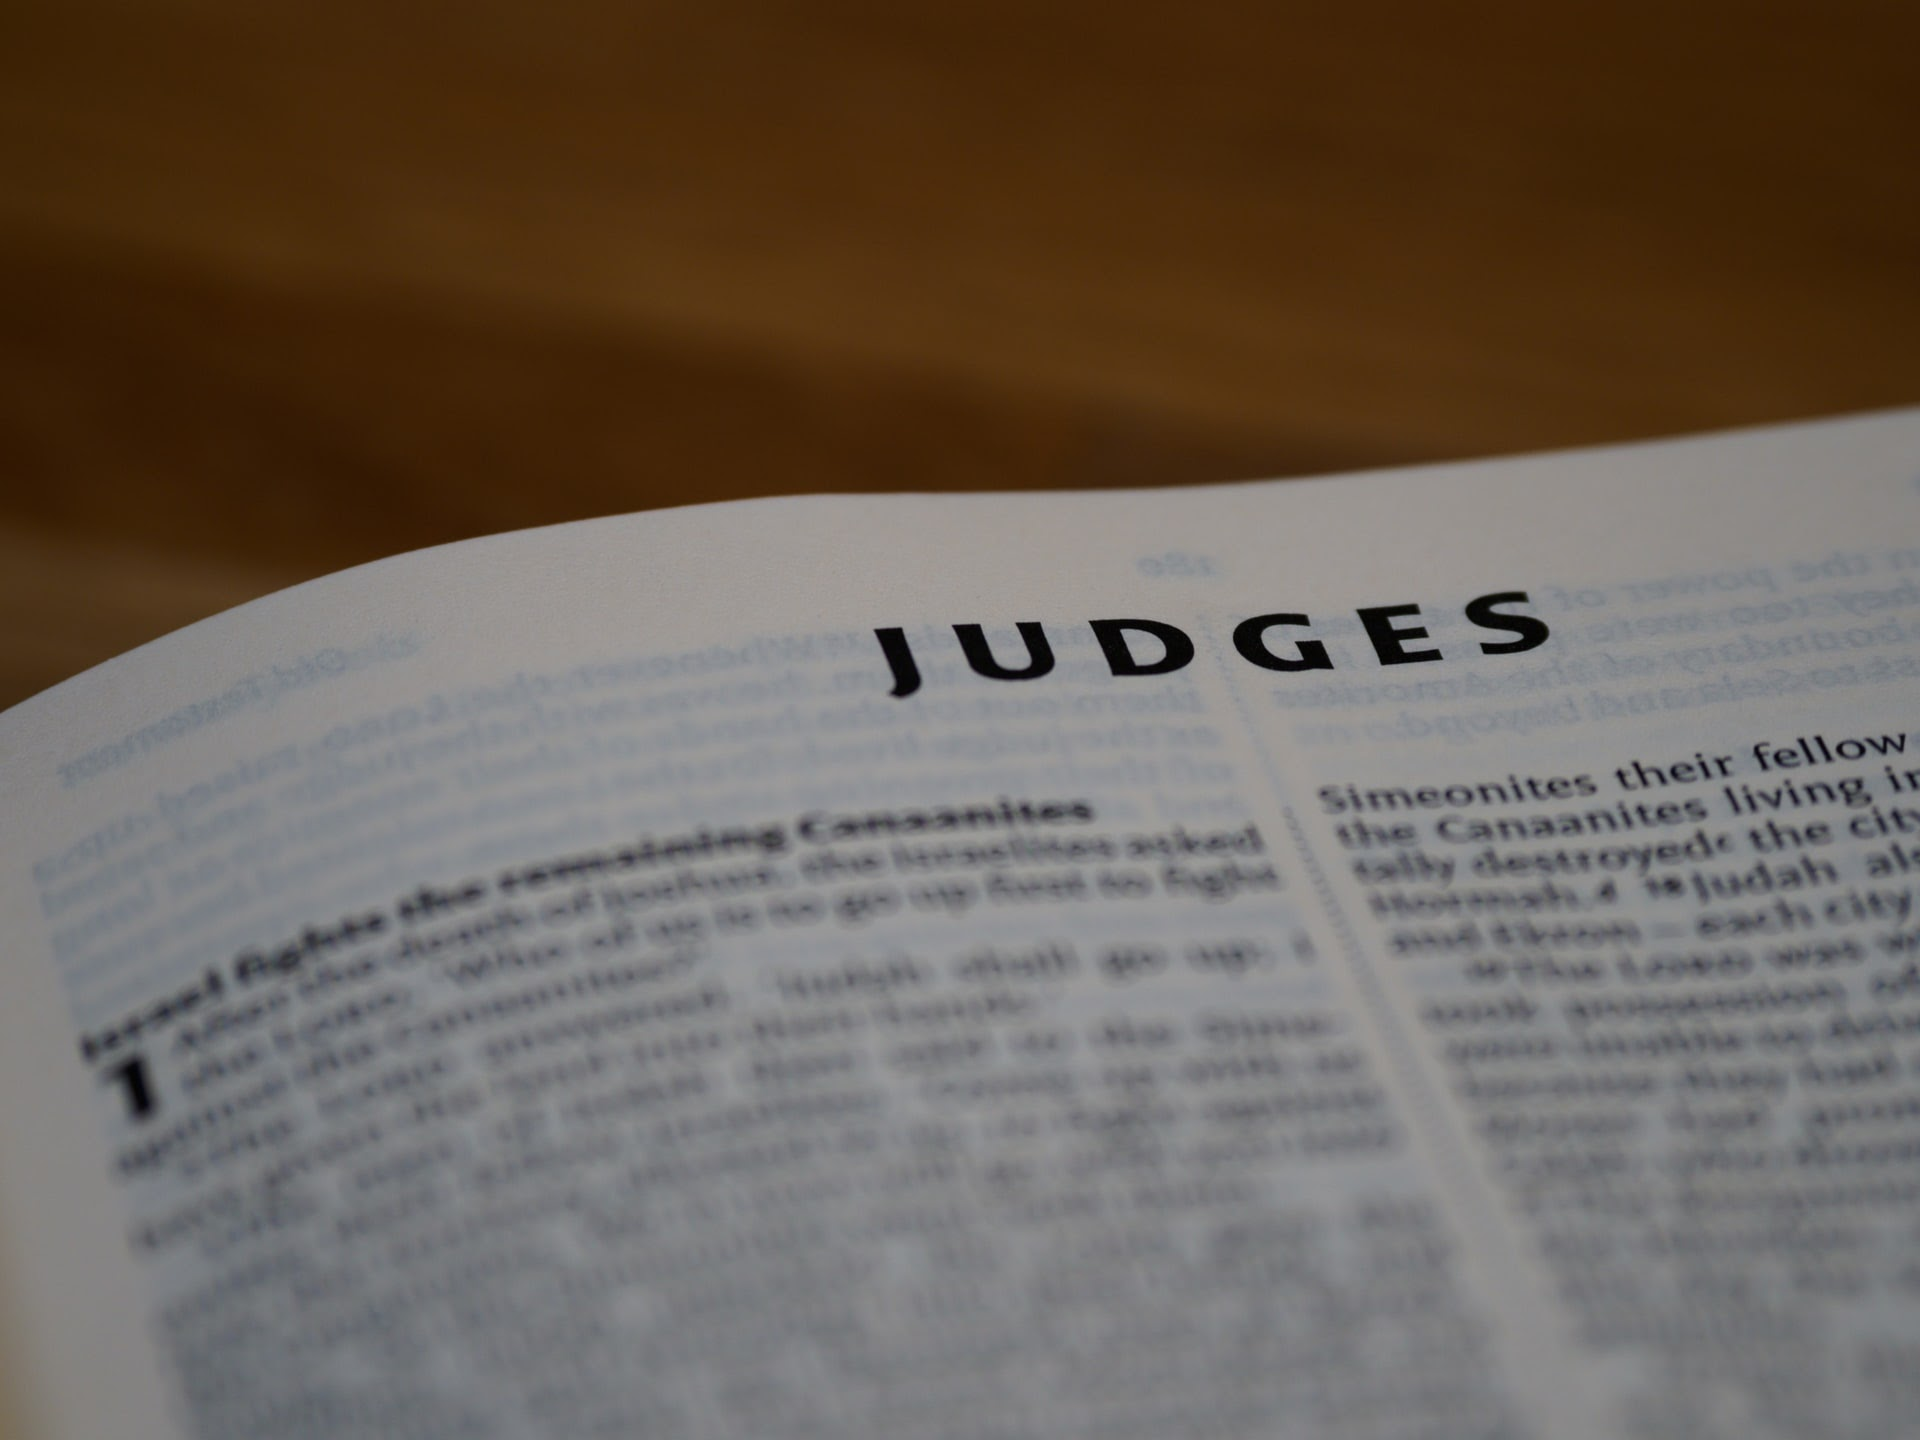 Bible open to the Book of Judges